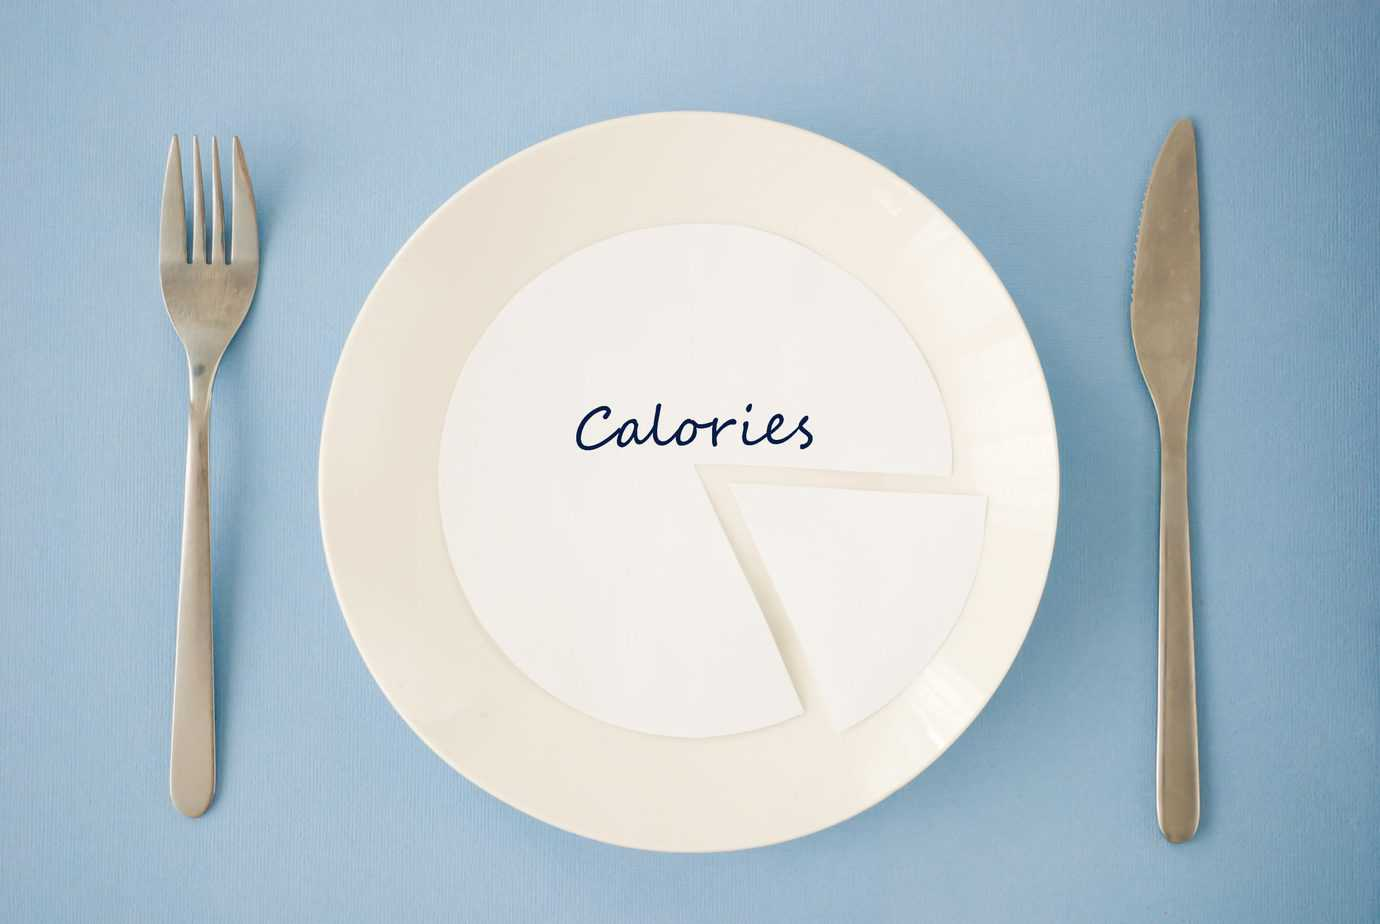 calories on plate